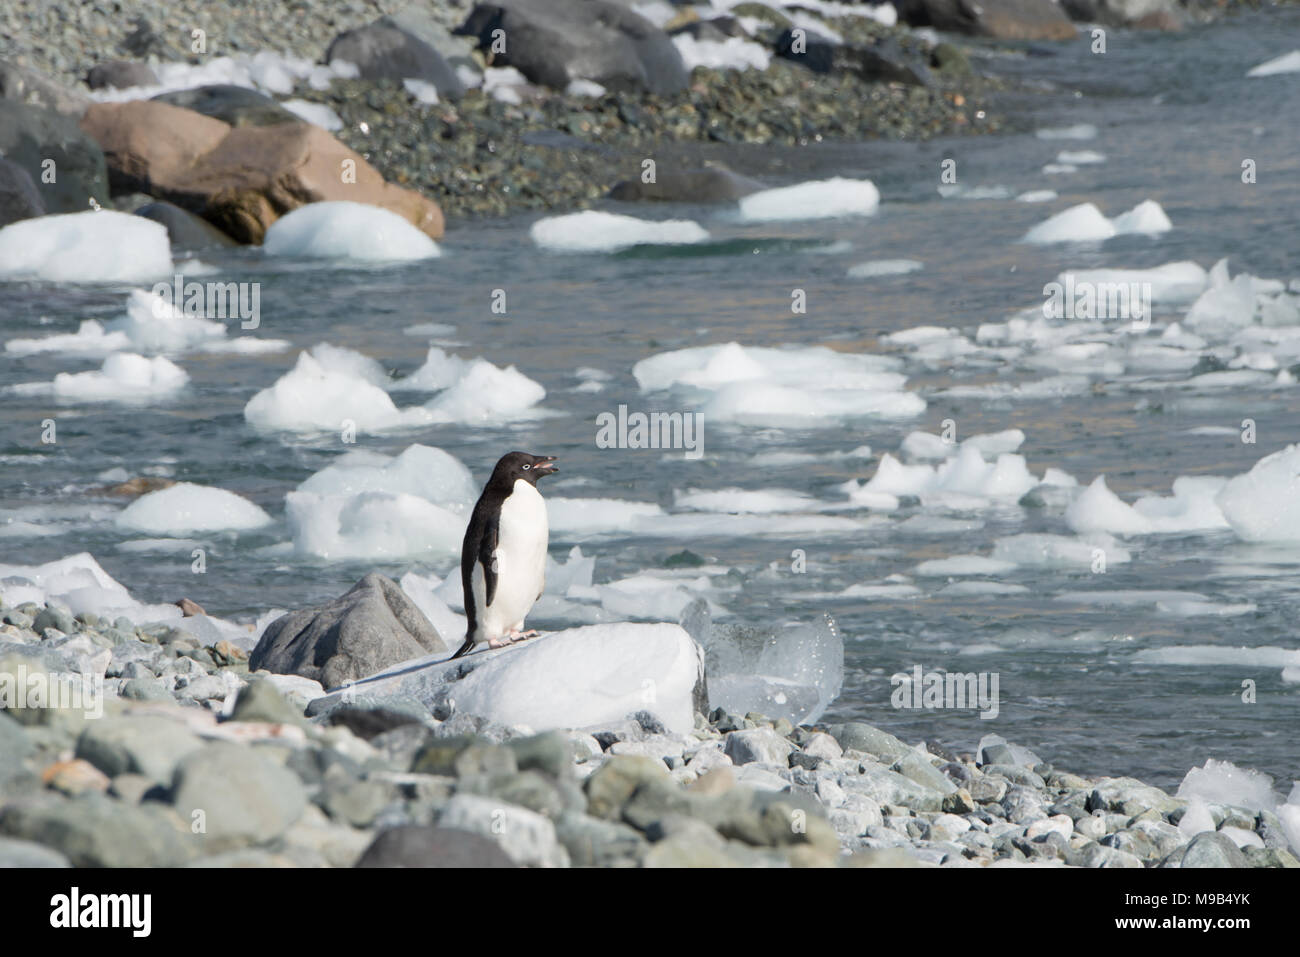 An Adelie Penguin (Pygoscelis adeliae)  standing on a rocky shoreline in Antarctica - Stock Image